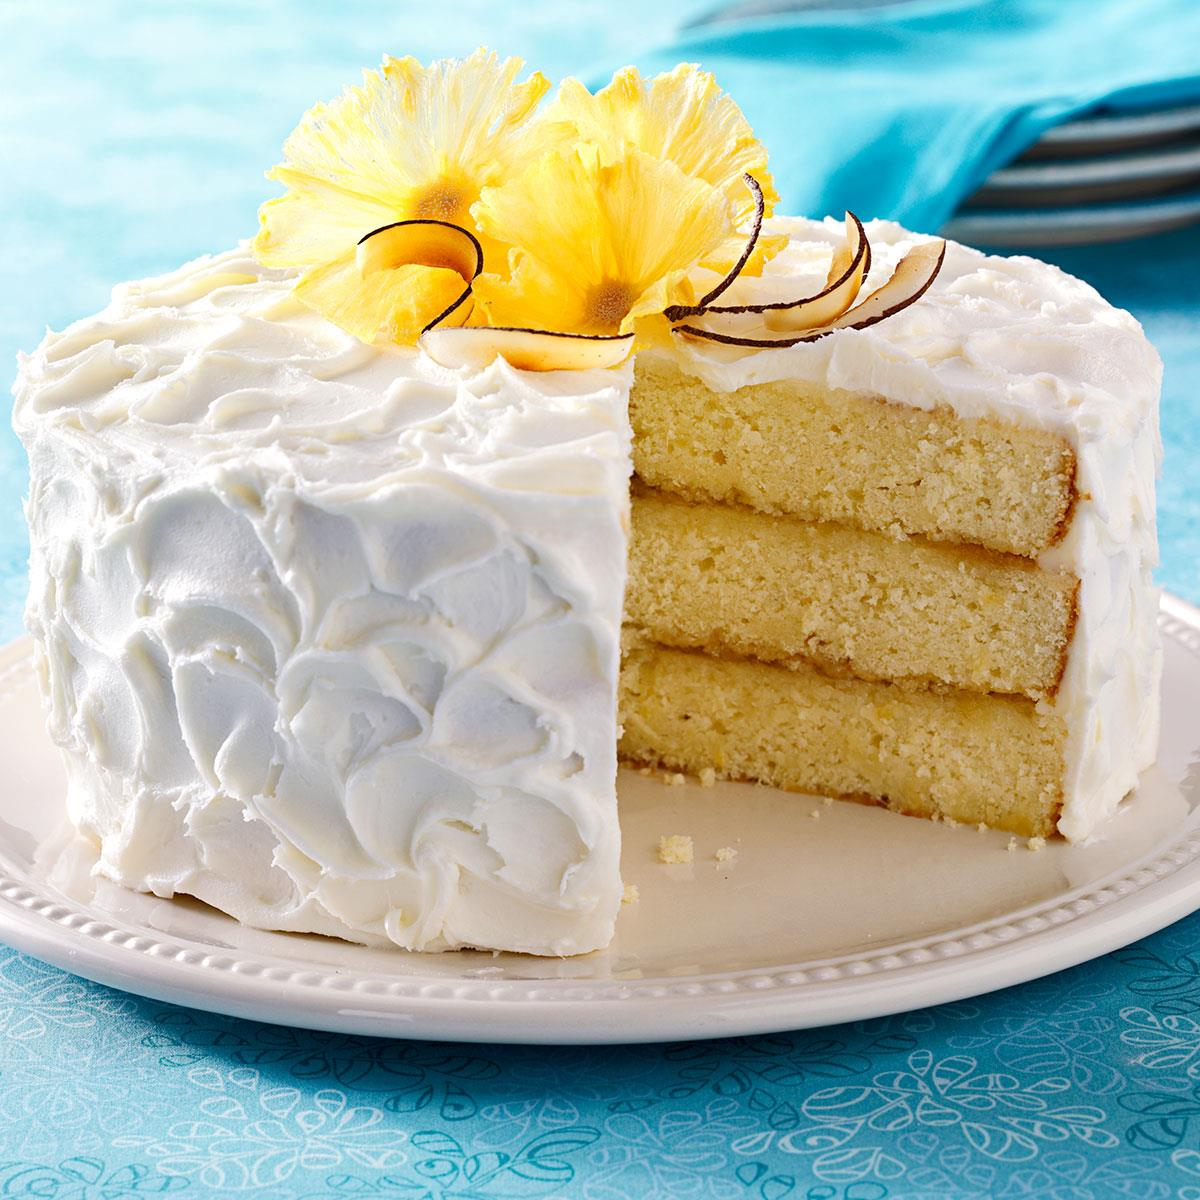 How To Make A Pina Colada Cake